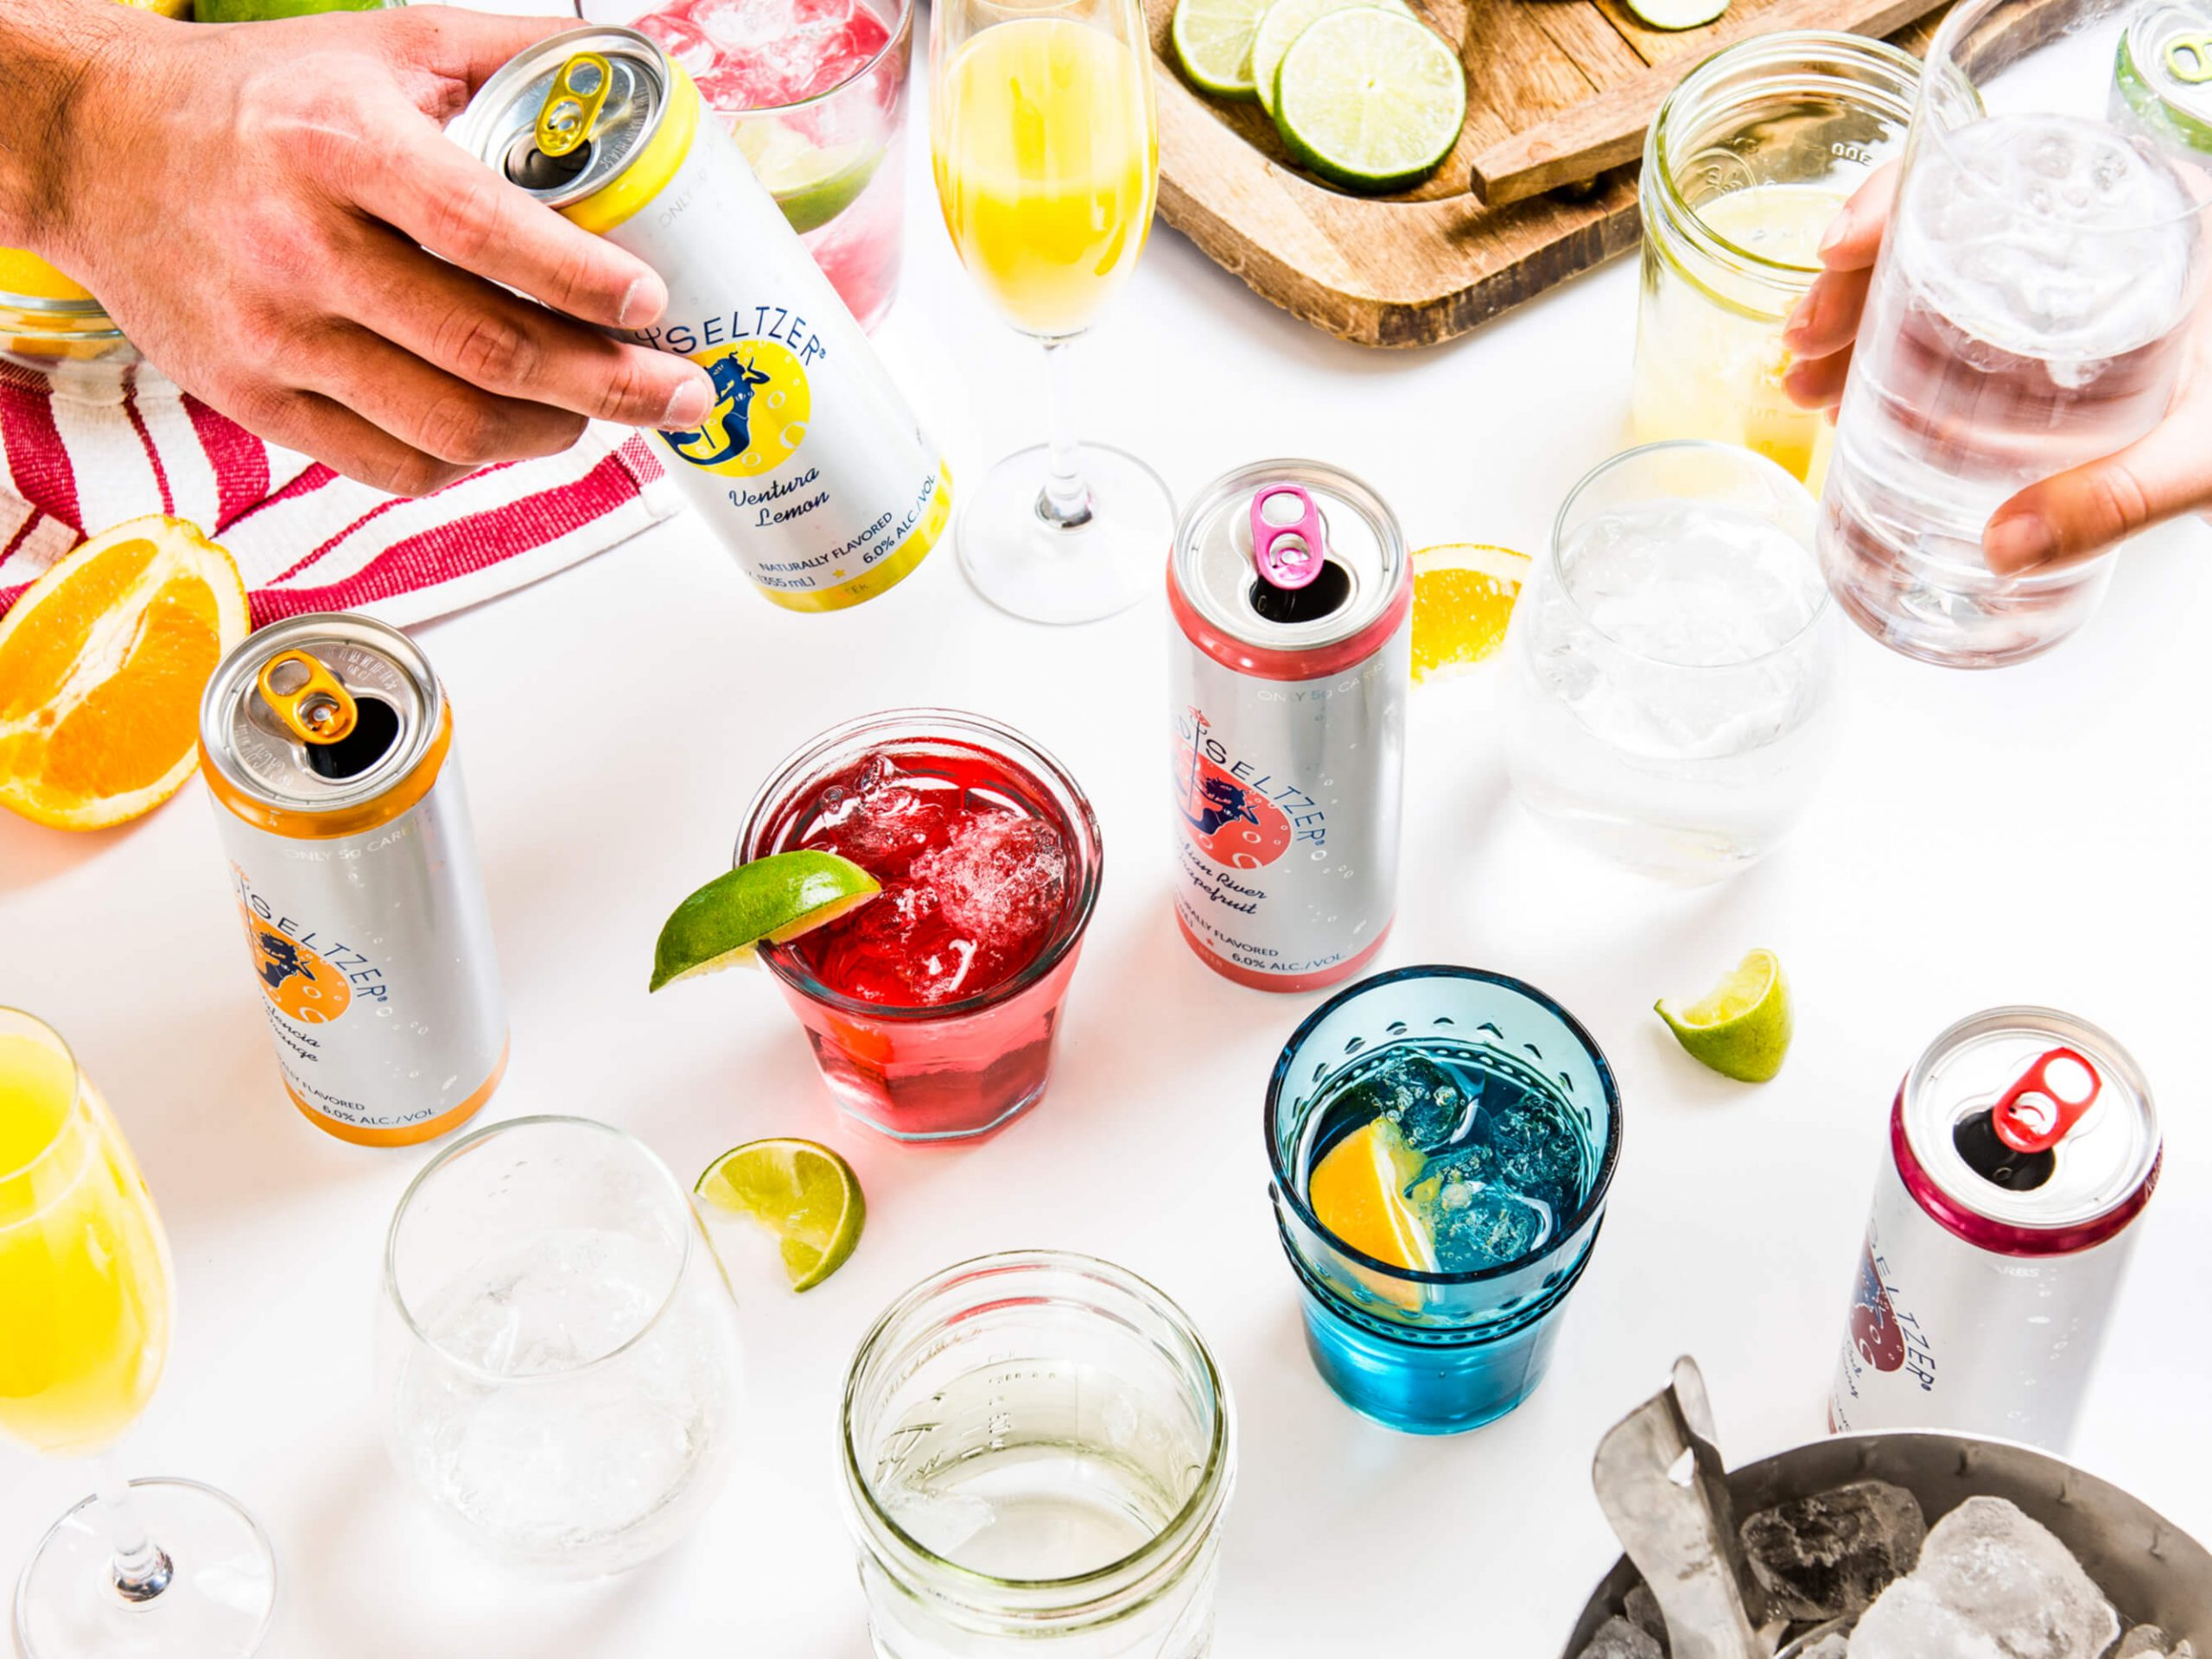 Which of the following is true about the best energy drinks and mixers: Sugar and Alcohol